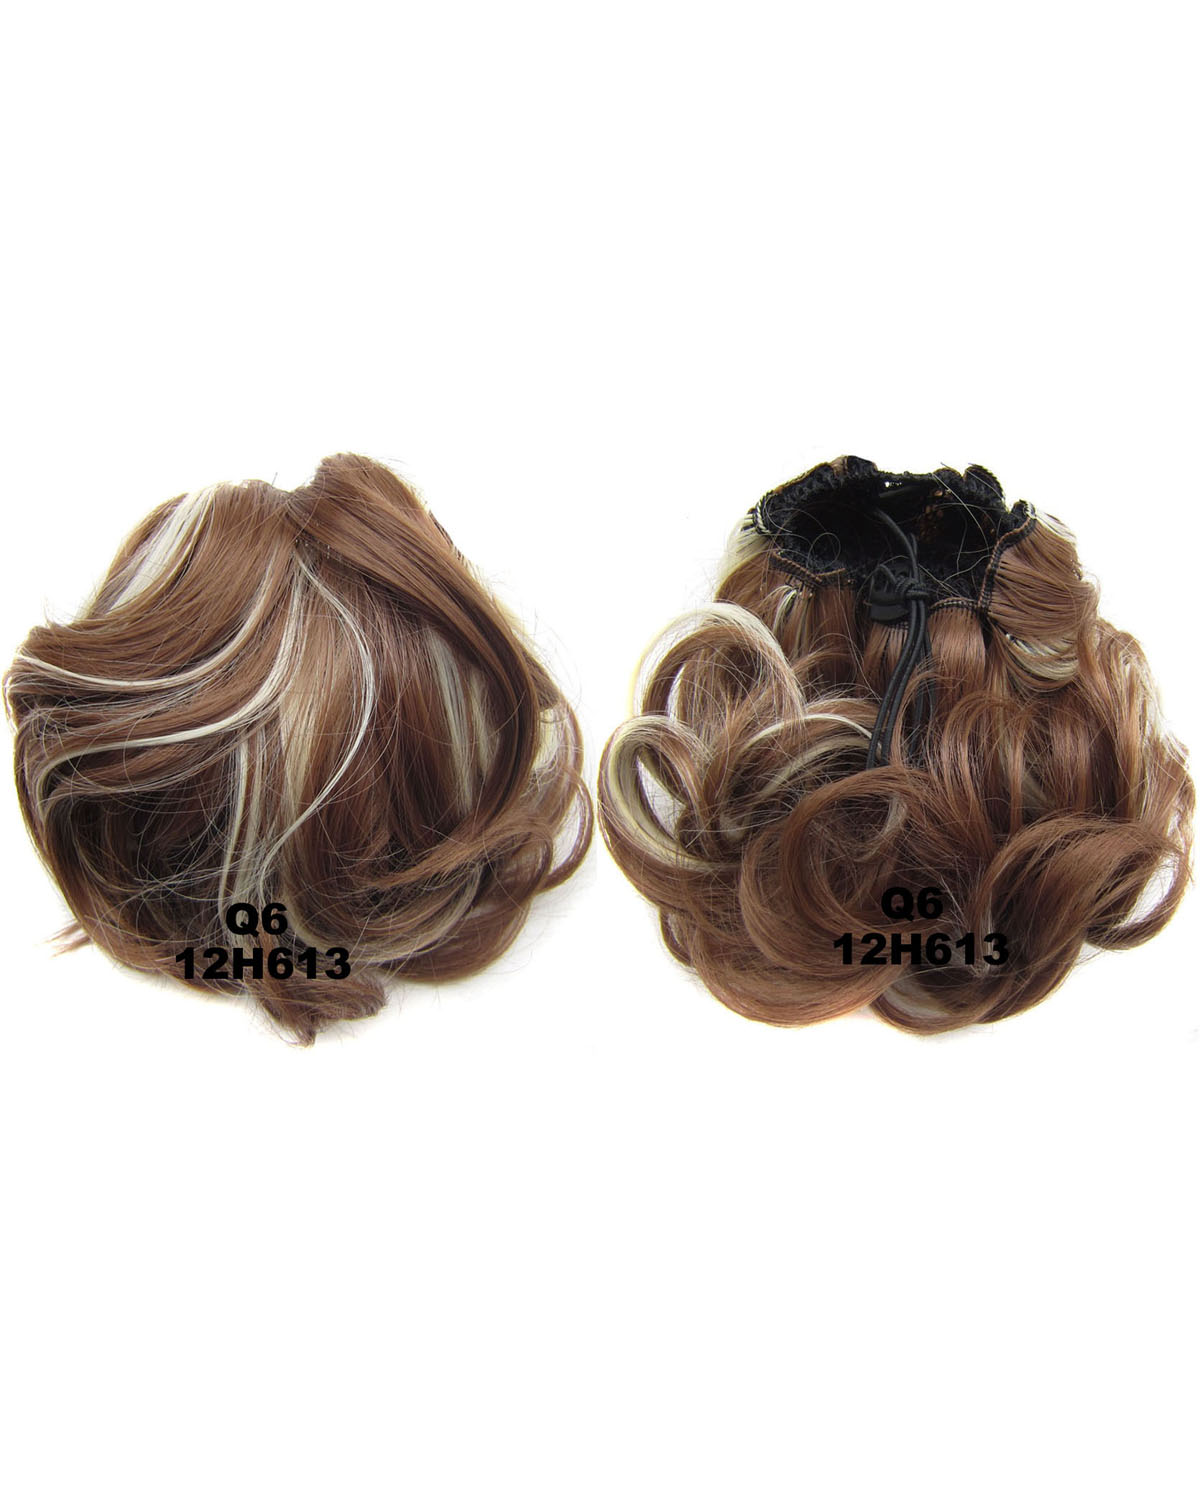 Ladies Newly Hot-sale  Curly and Short Hair Buns Drawstring Synthetic Hair Extension Bride Scrunchies 12H613